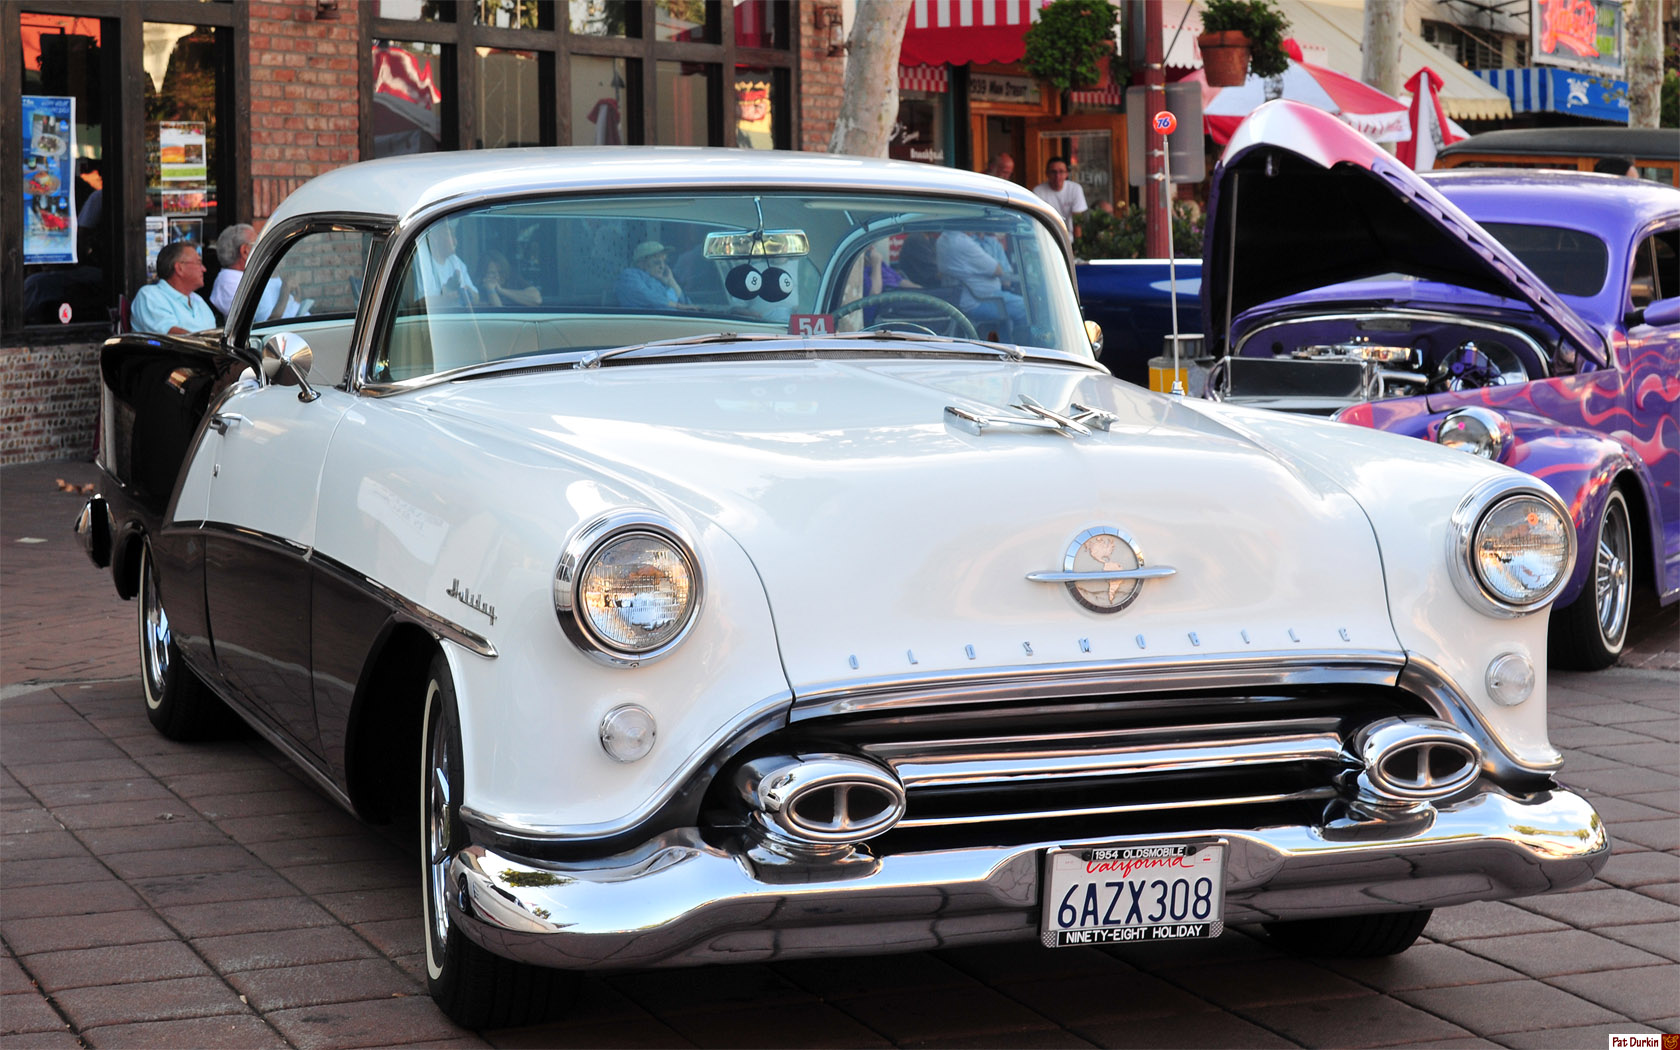 1954 Oldsmobile 98 Holiday HT coupe - white over black - front ...